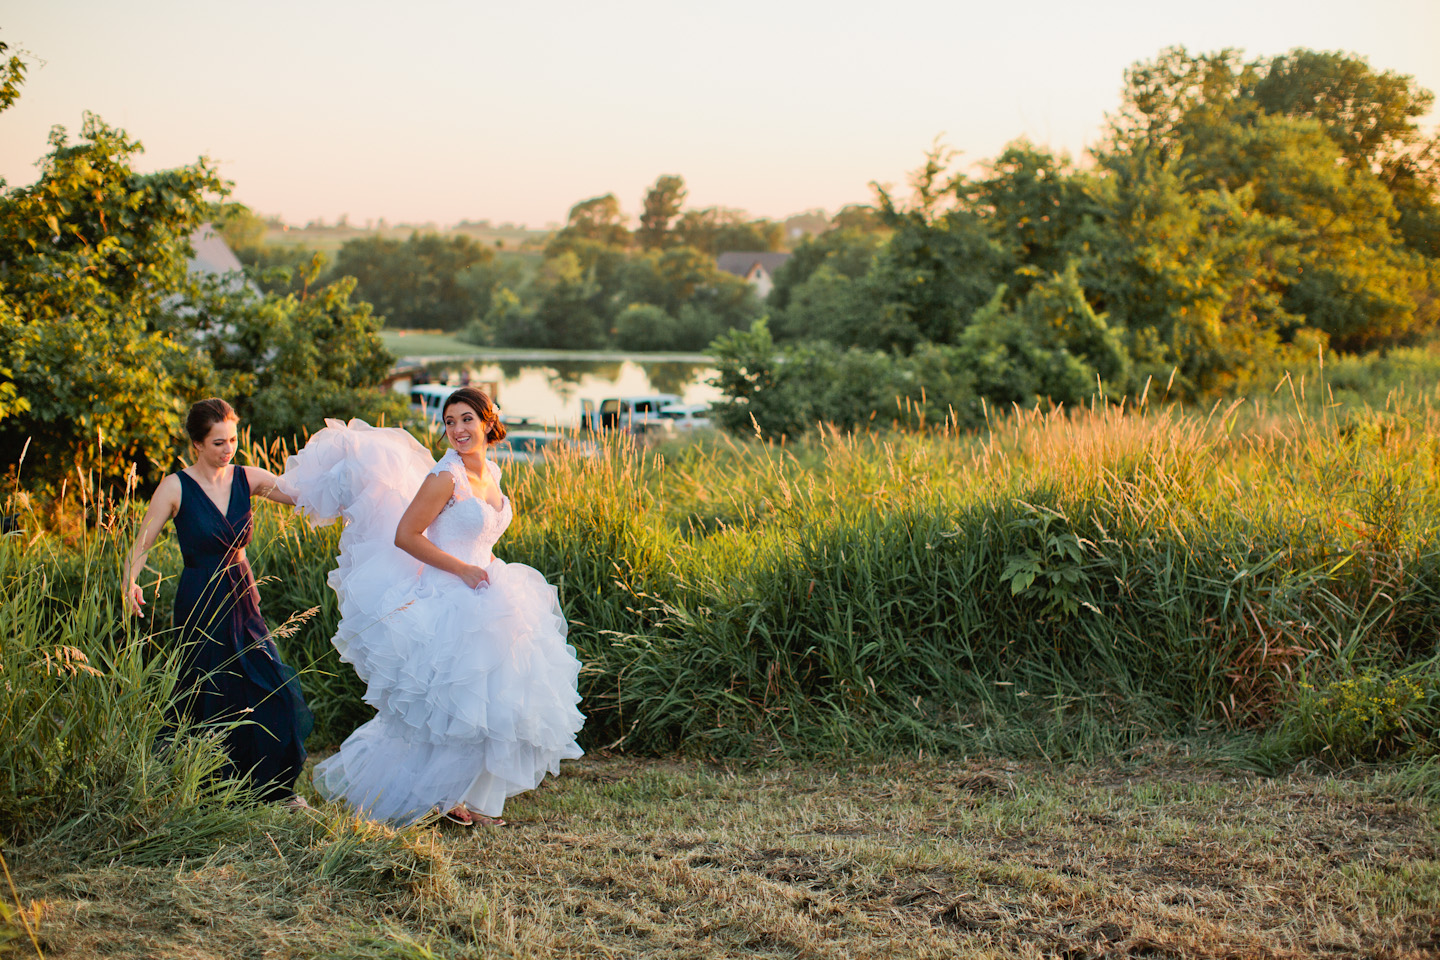 bride and groom in field of flowers at sunset des moines wedding photographers